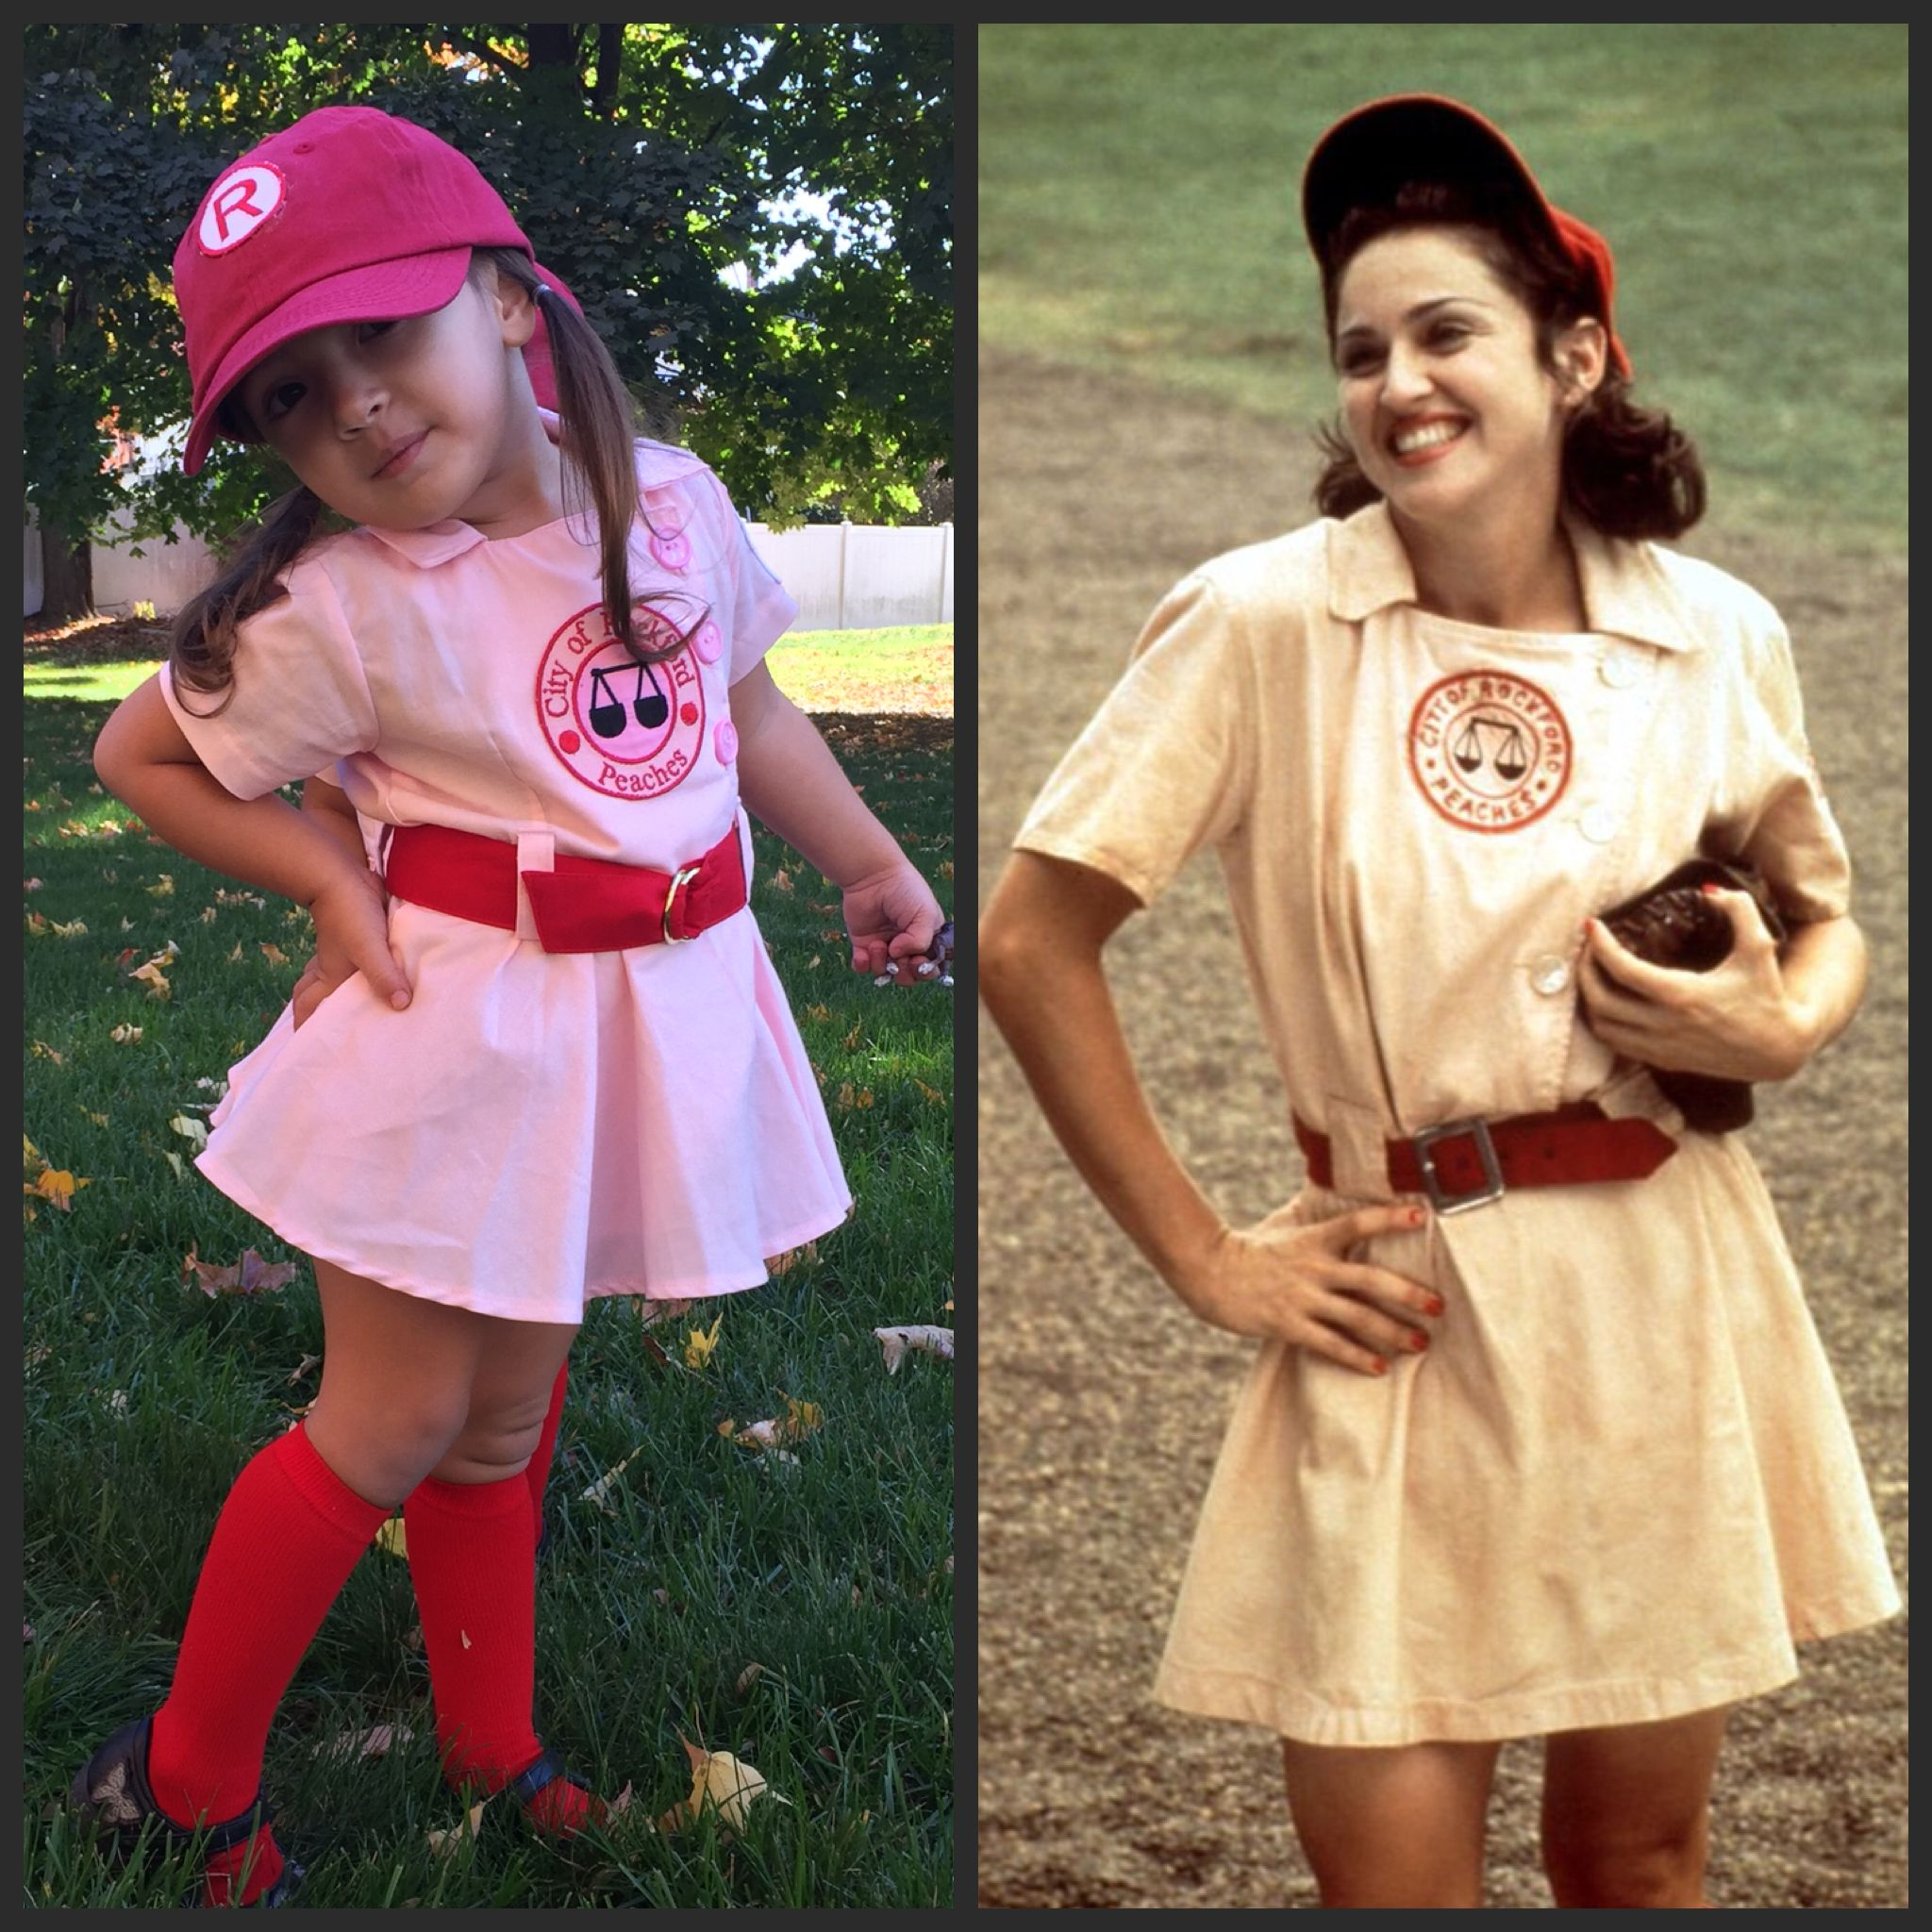 My Charley modeling her Rockford Peaches costumes and posing right like All the Way Mae. Hahaha! #rockfordpeaches #aleagueoftheirown #halloween  sc 1 st  Pinterest & My Charley modeling her Rockford Peaches costumes and posing right ...